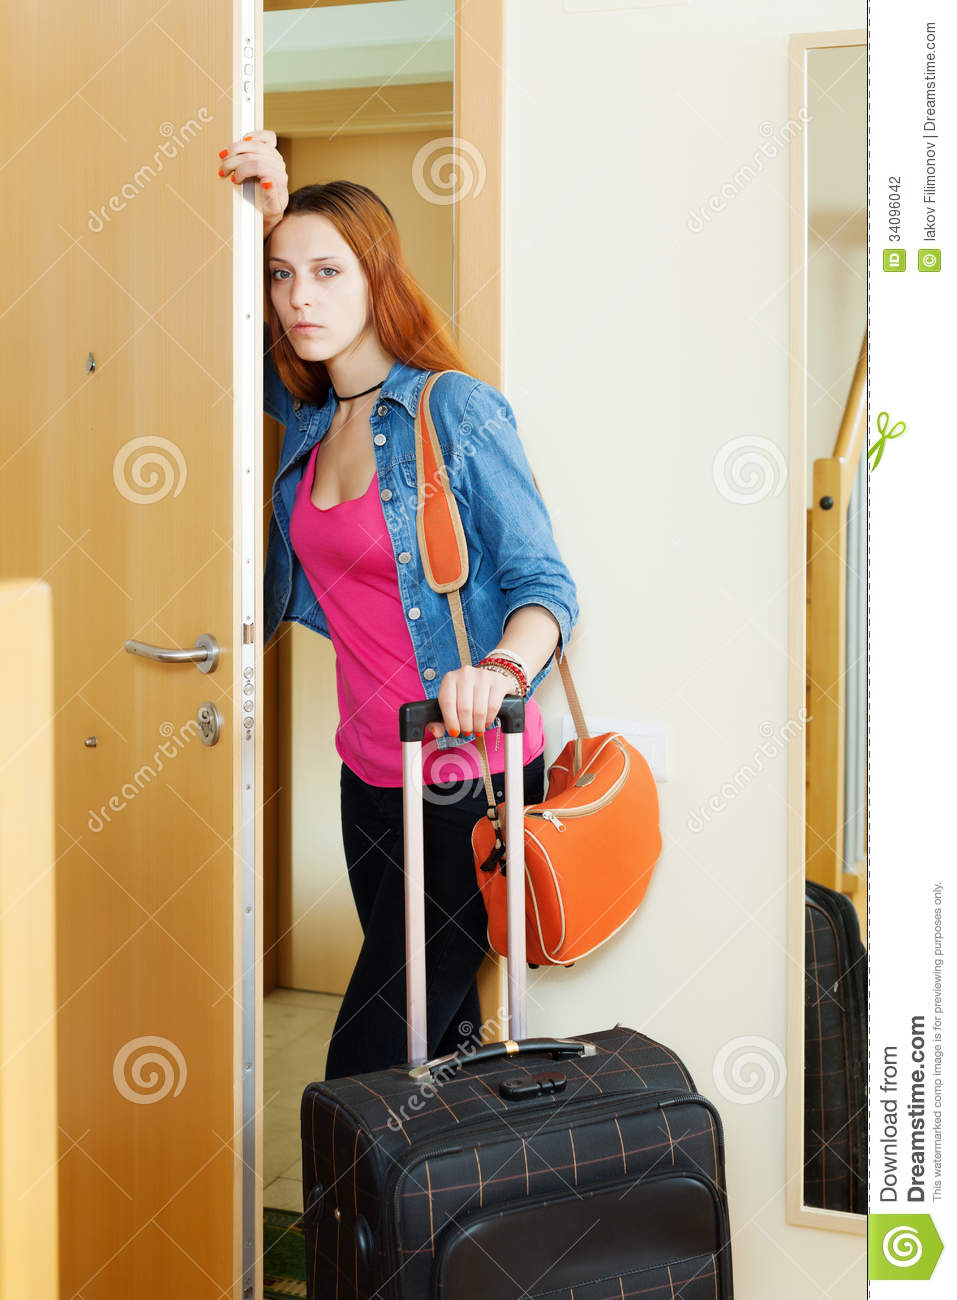 Sad Woman Leaving Home Stock Photography - Image: 34096042